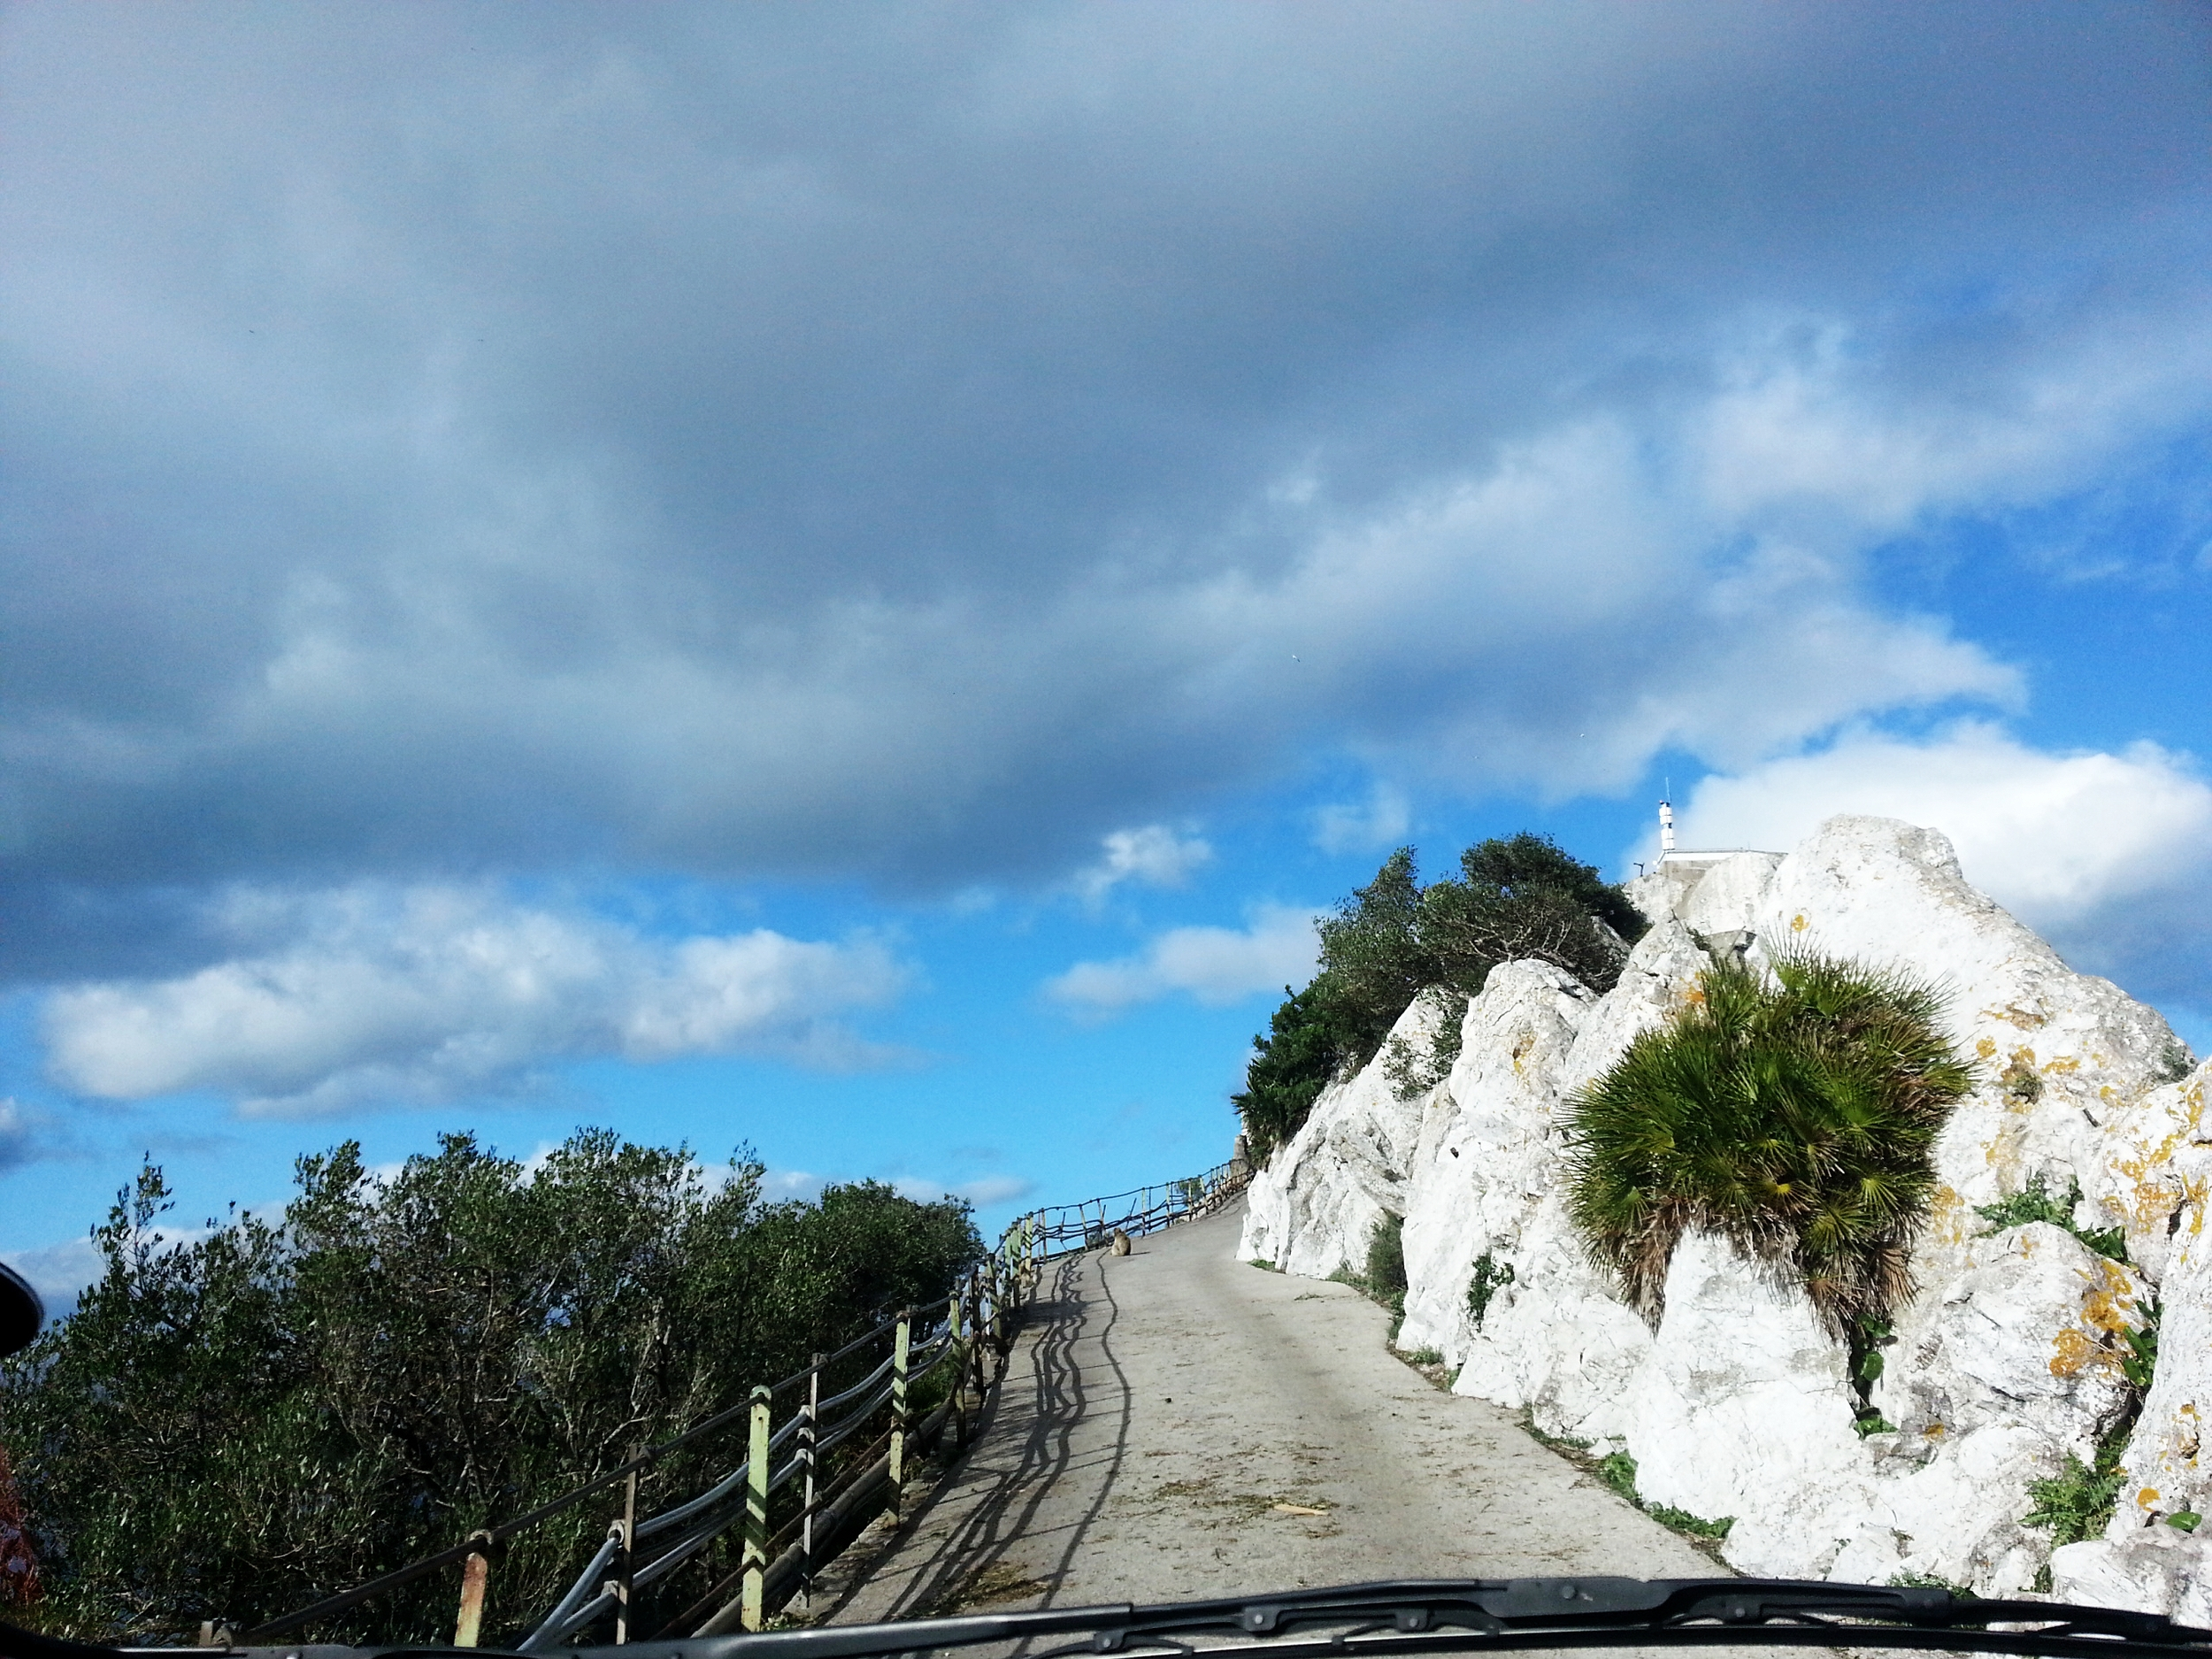 Gibraltar . Approaching Apes Den... Watch out for monkeys sitting on the road!